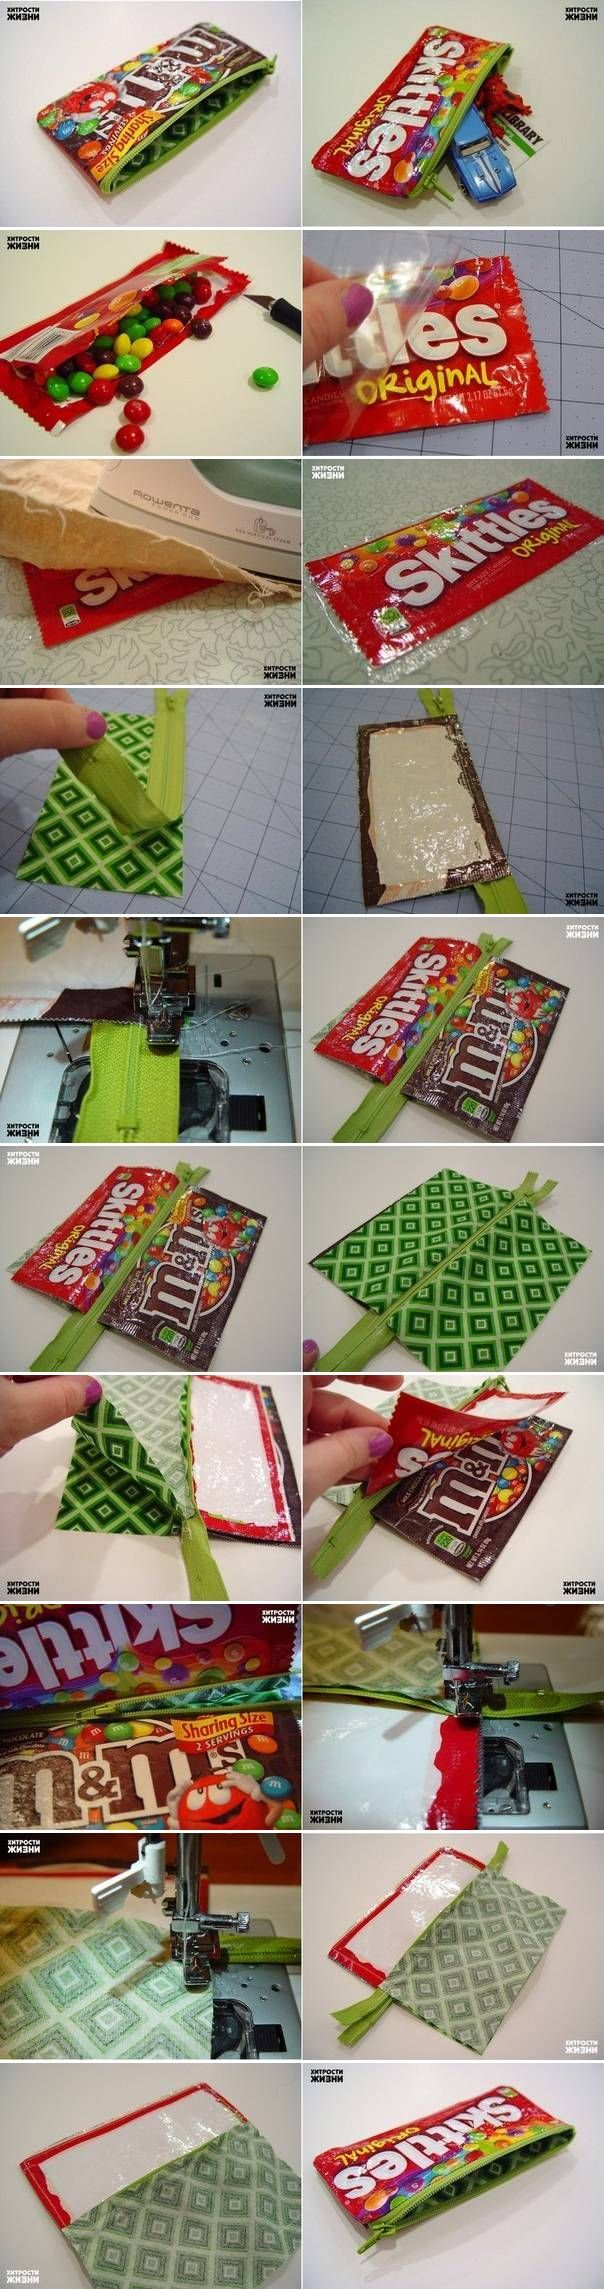 DIY Candy Wrap Pencil Case I seriously need these for my boys! I really need to learn to sew! LOL